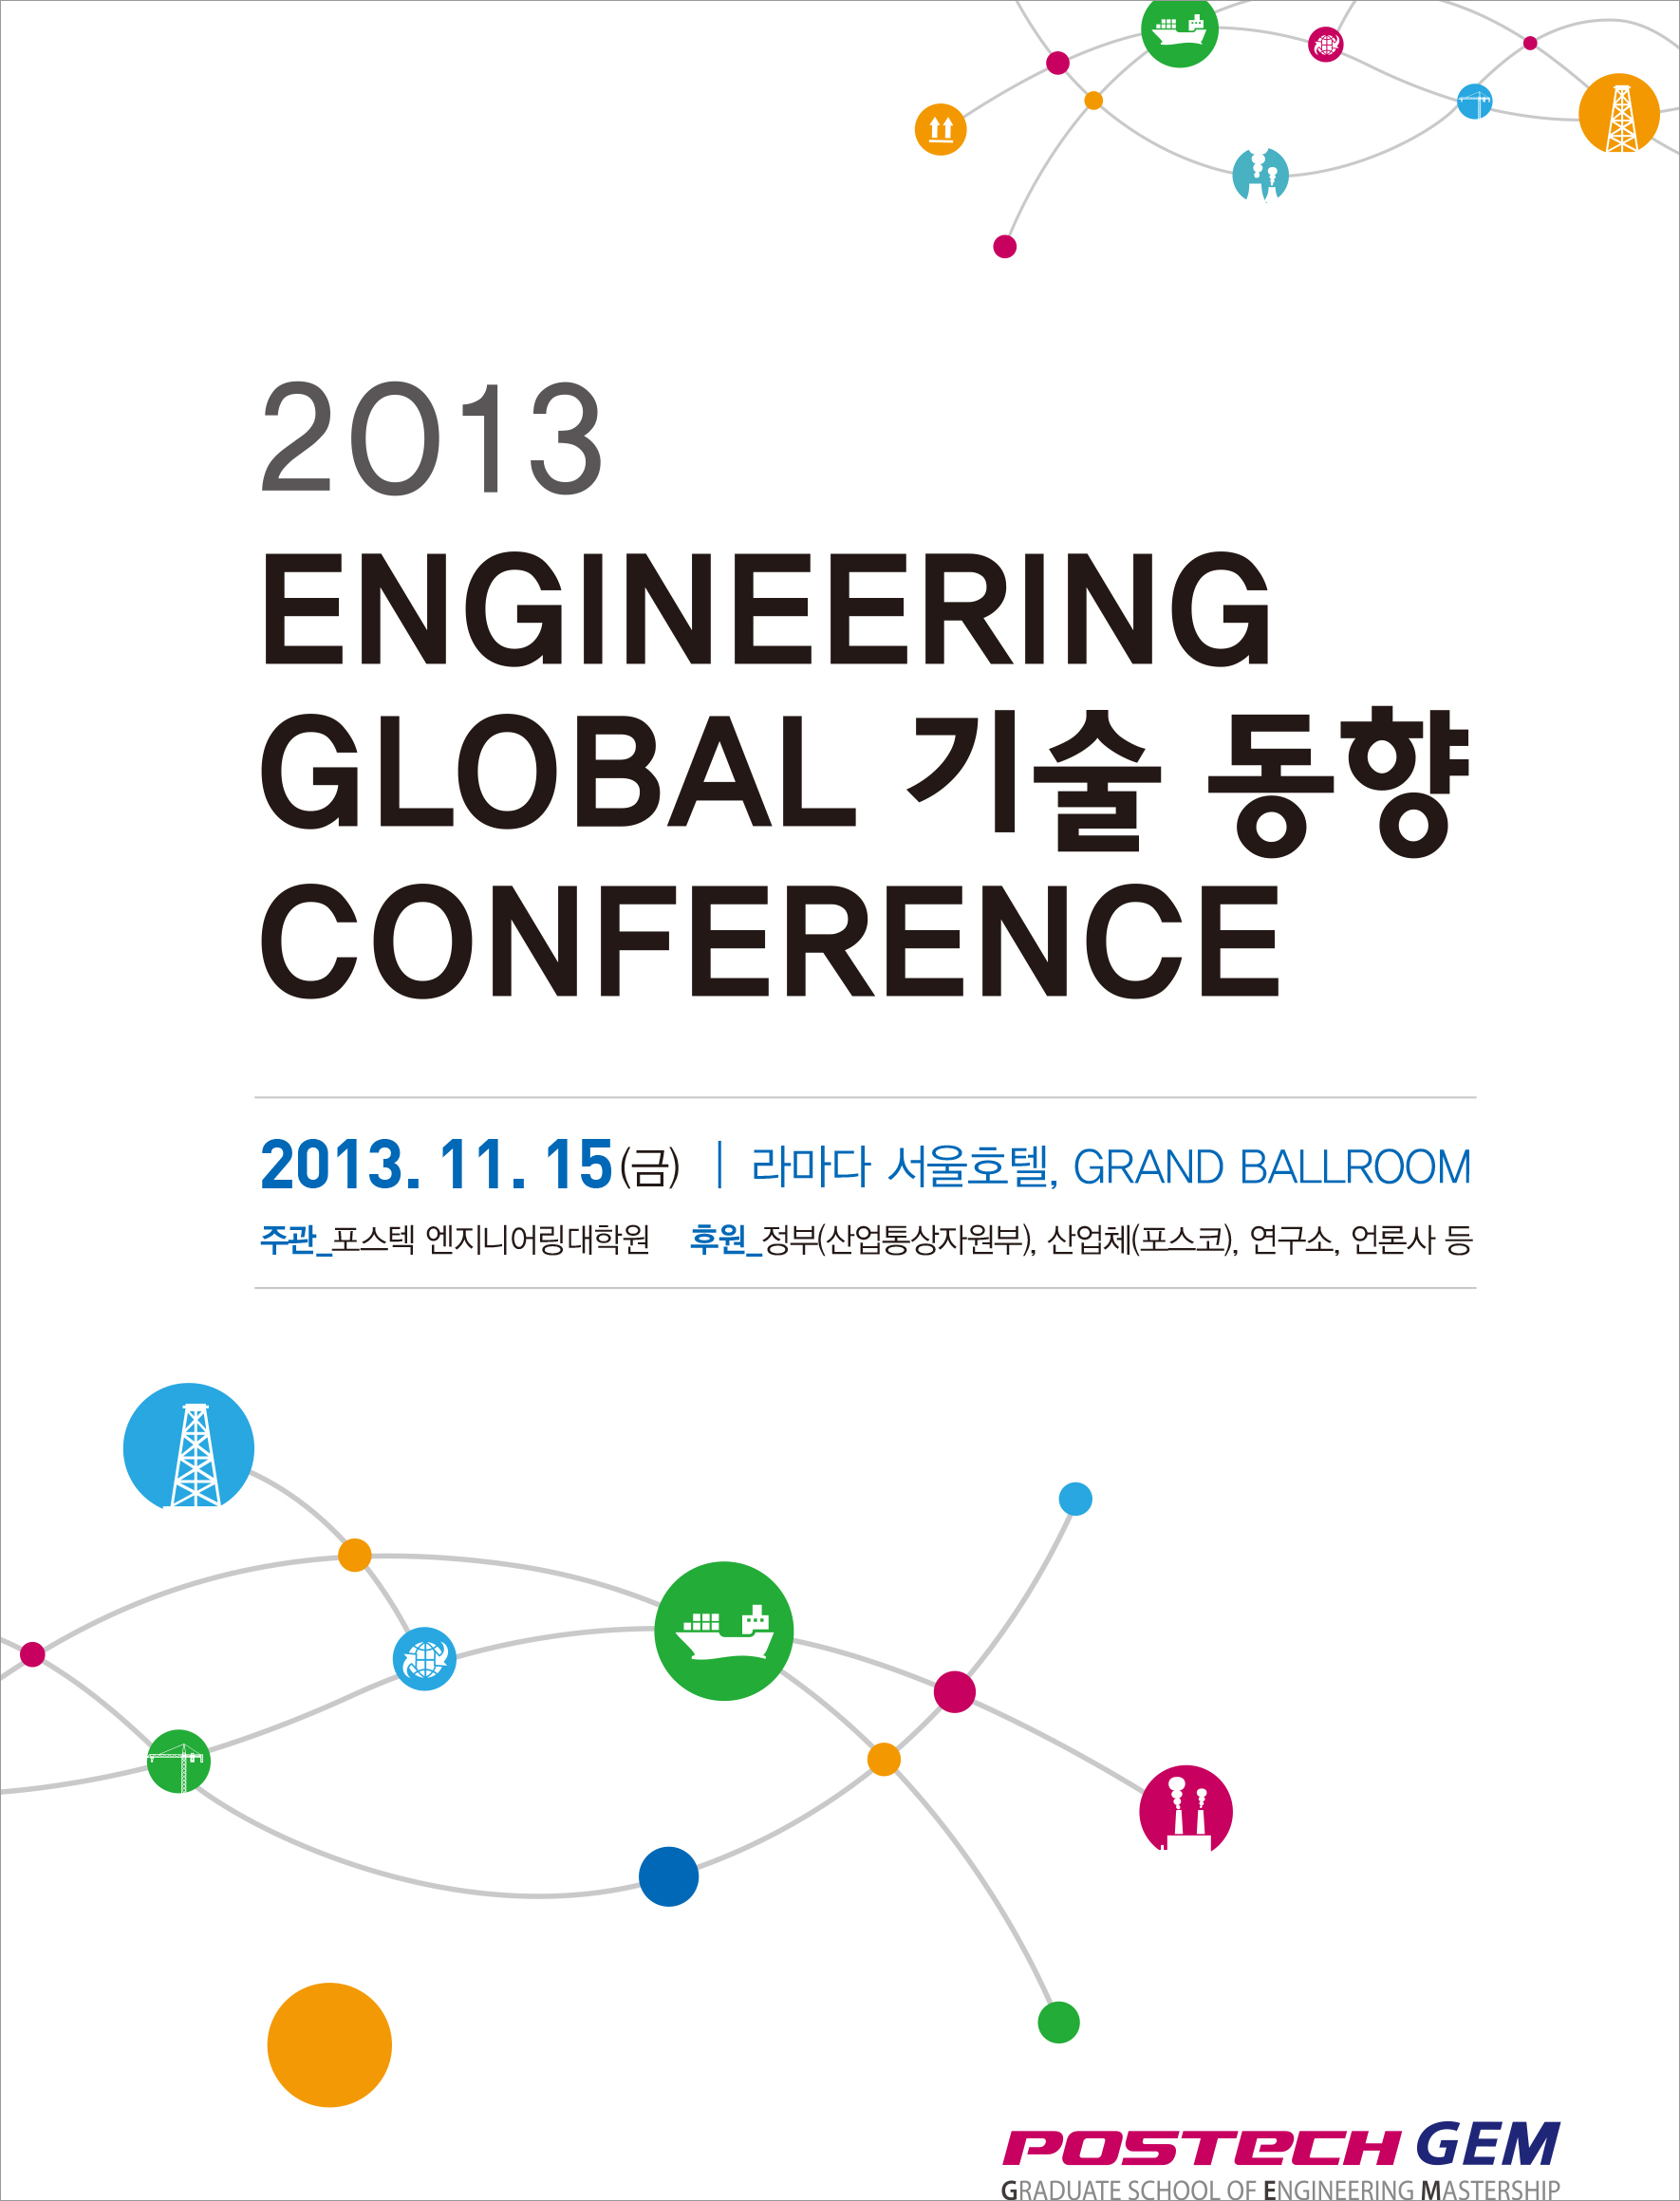 2013 ENGINEERING GLOBAL 기술 동향 CONFERENCE